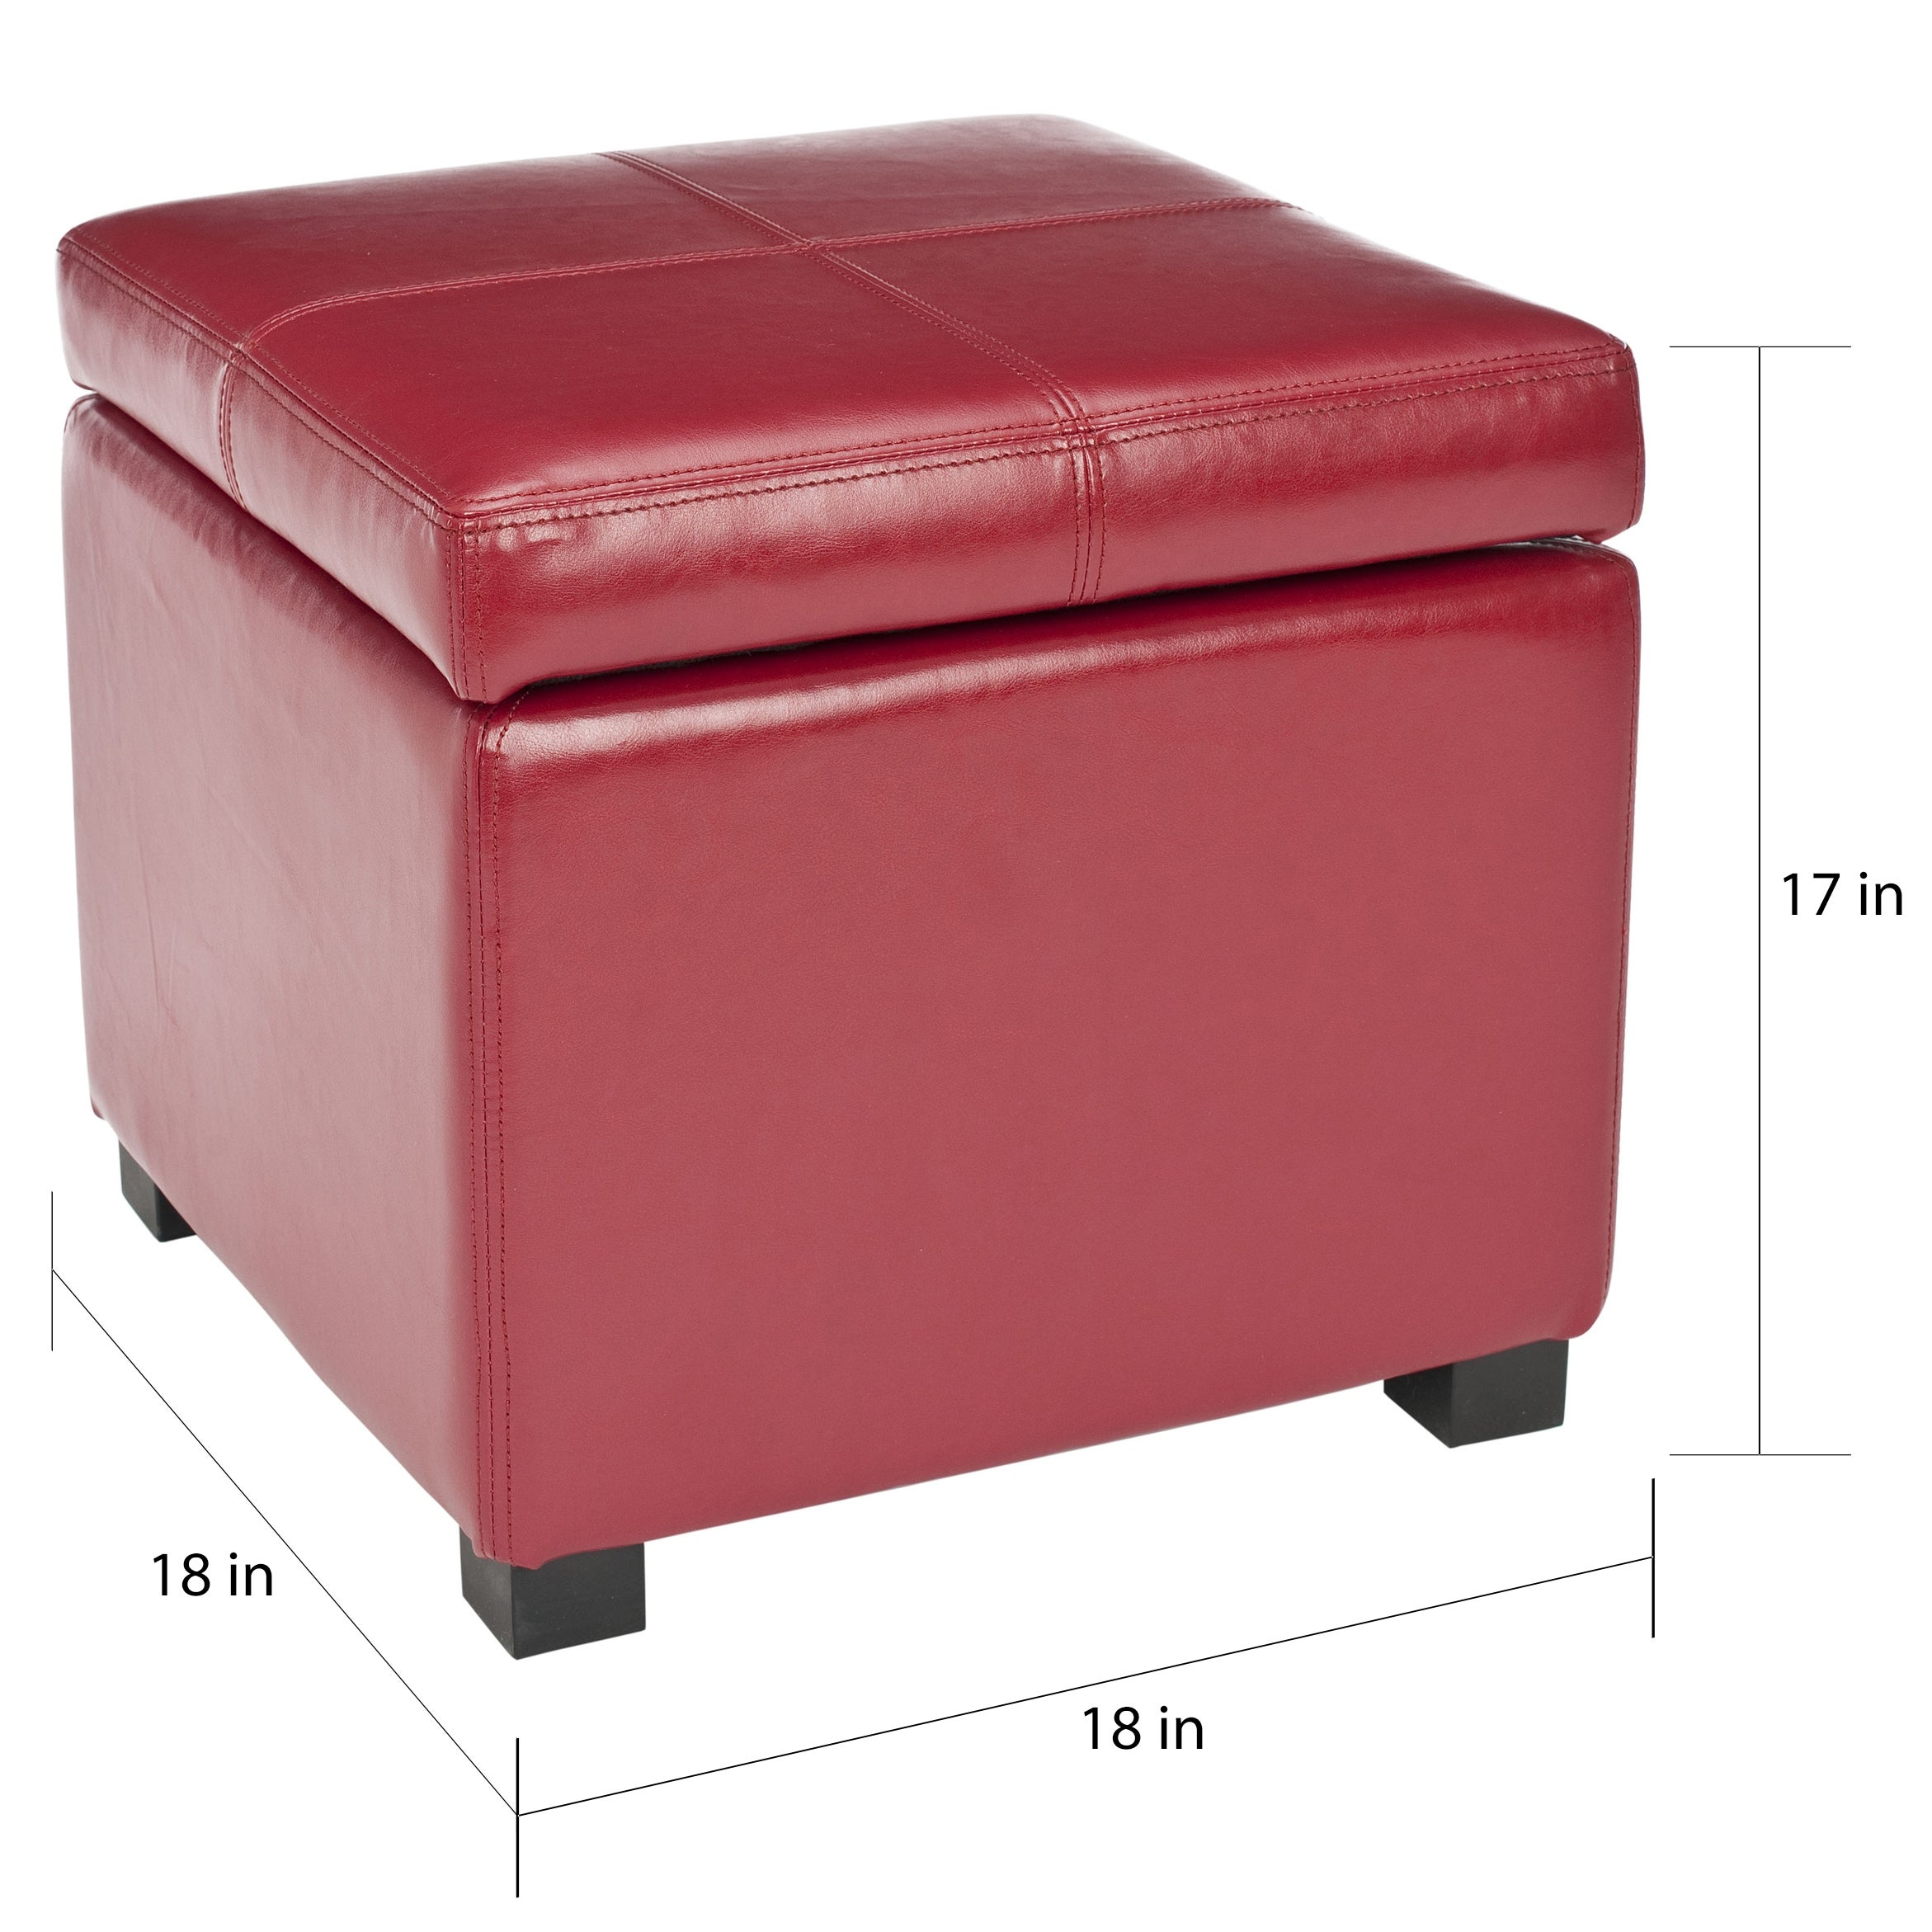 Beau Shop Safavieh Broadway Red Leather Storage Ottoman   On Sale   Free  Shipping Today   Overstock   5880662